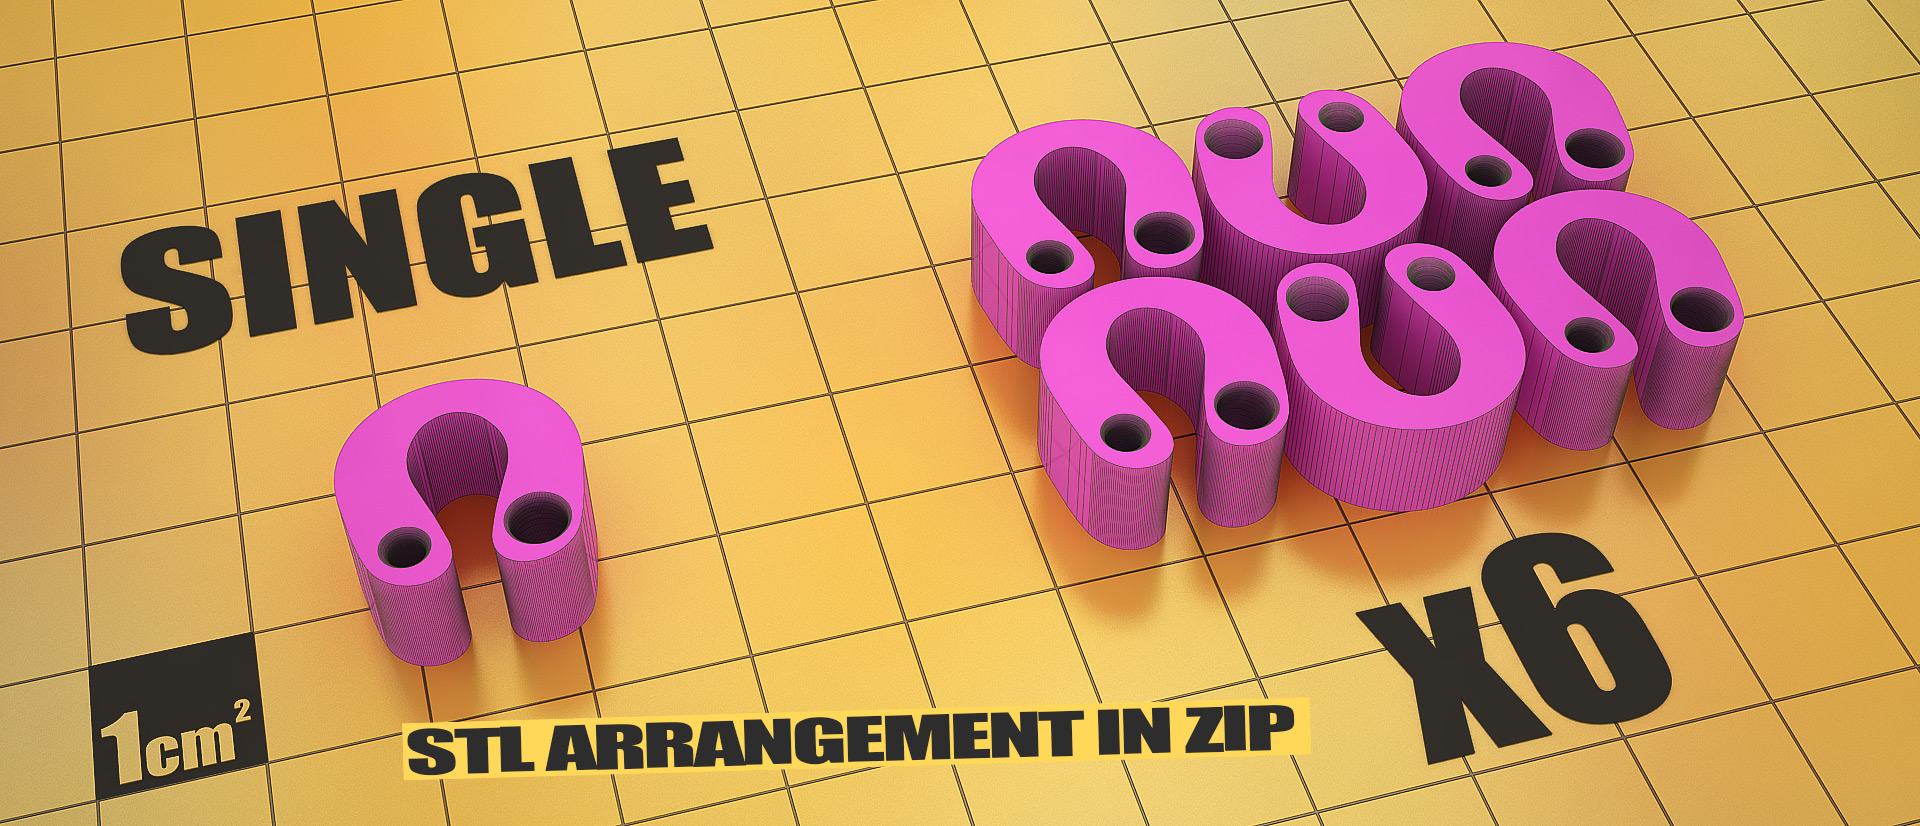 Justpressprint 3d print Filament Clip STL arrangement in zip